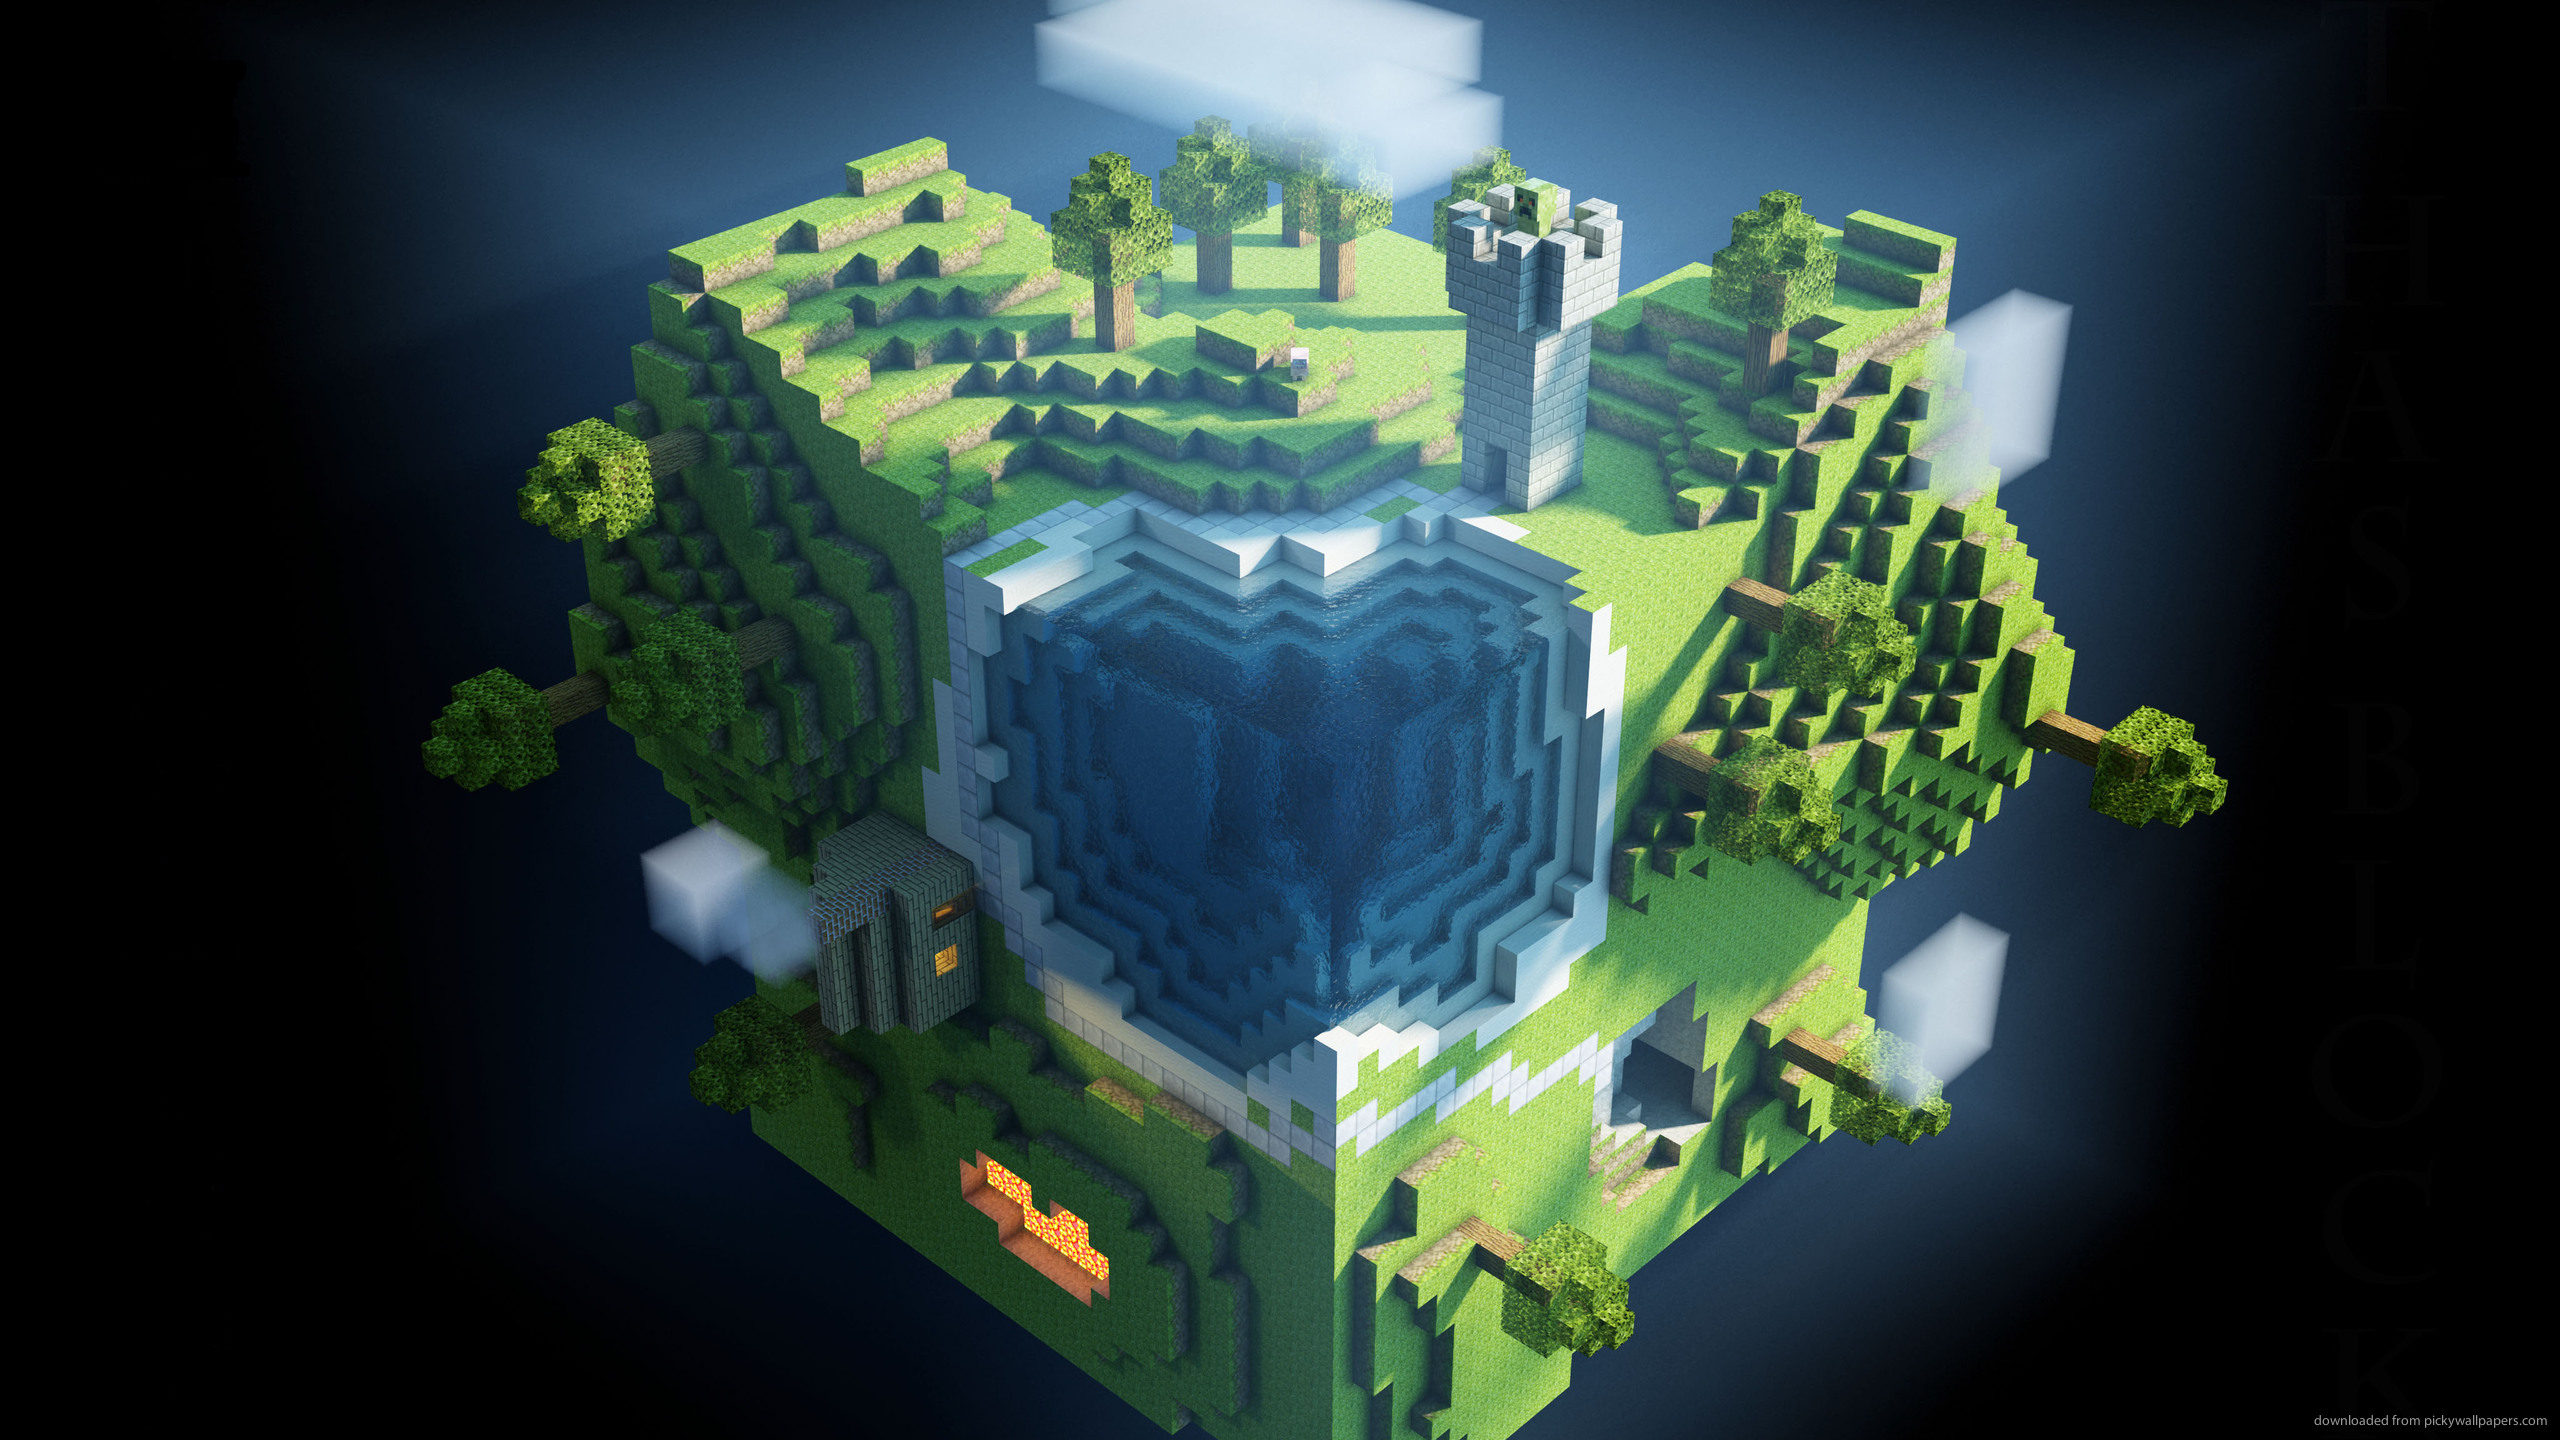 minecraft wallpaper globe square pictures games 2560x1440 2560x1440